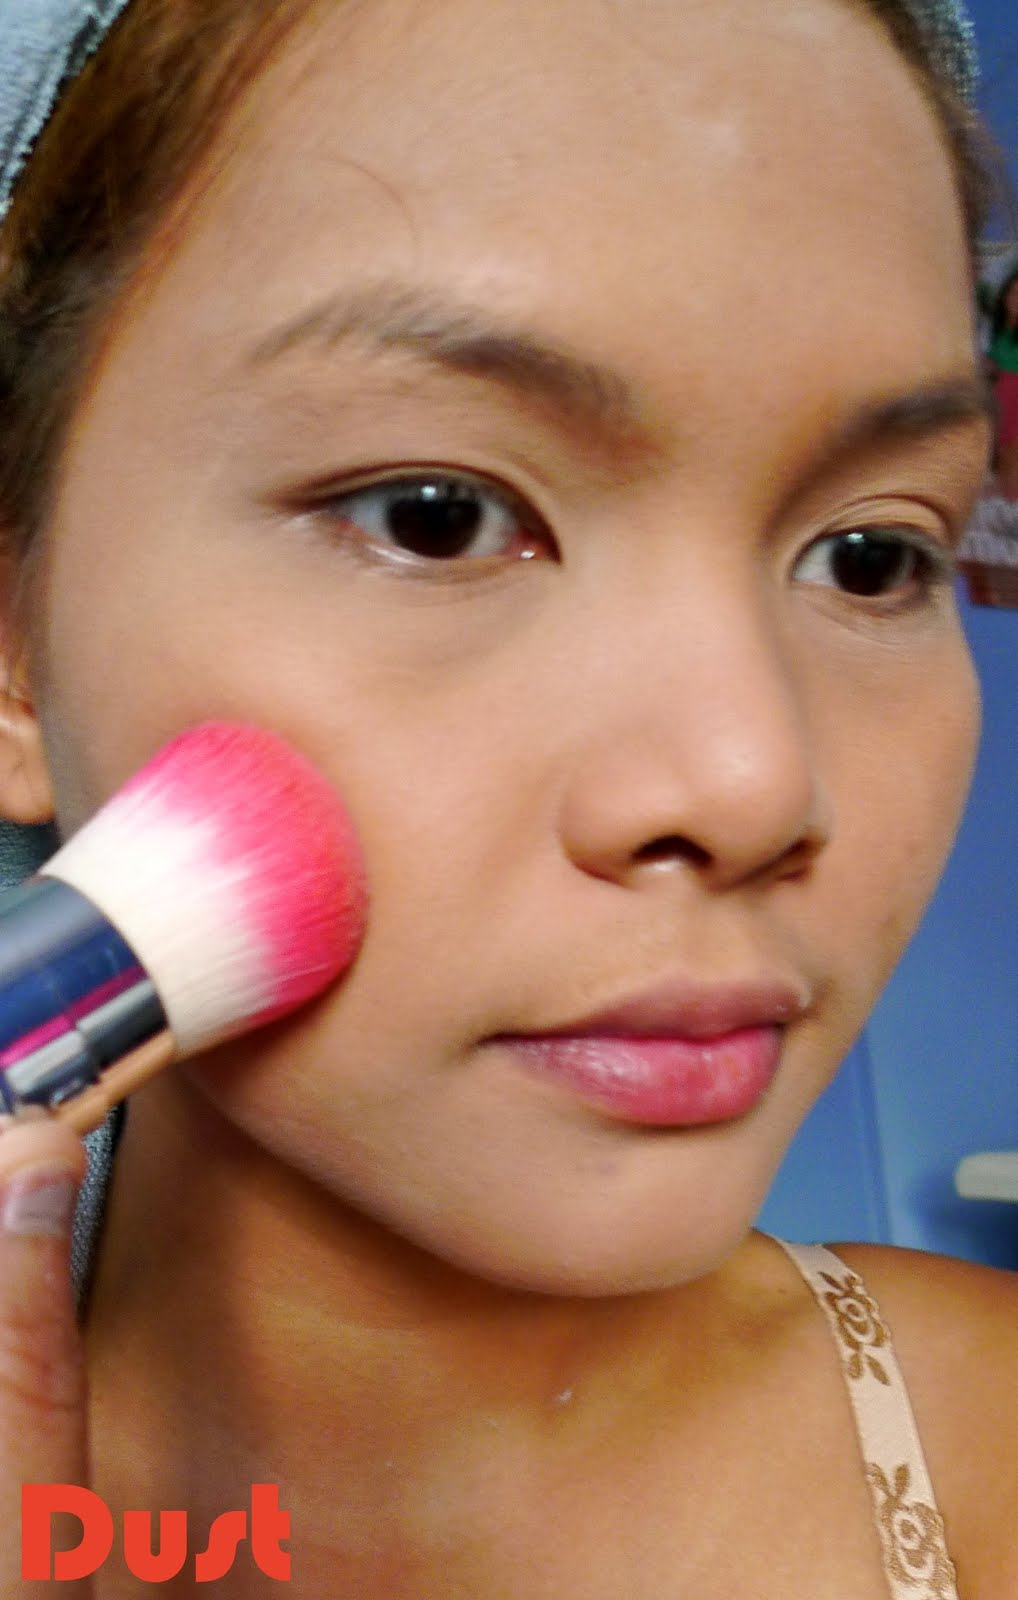 HOW TO: Apply Liquid Foundation Flawlessly